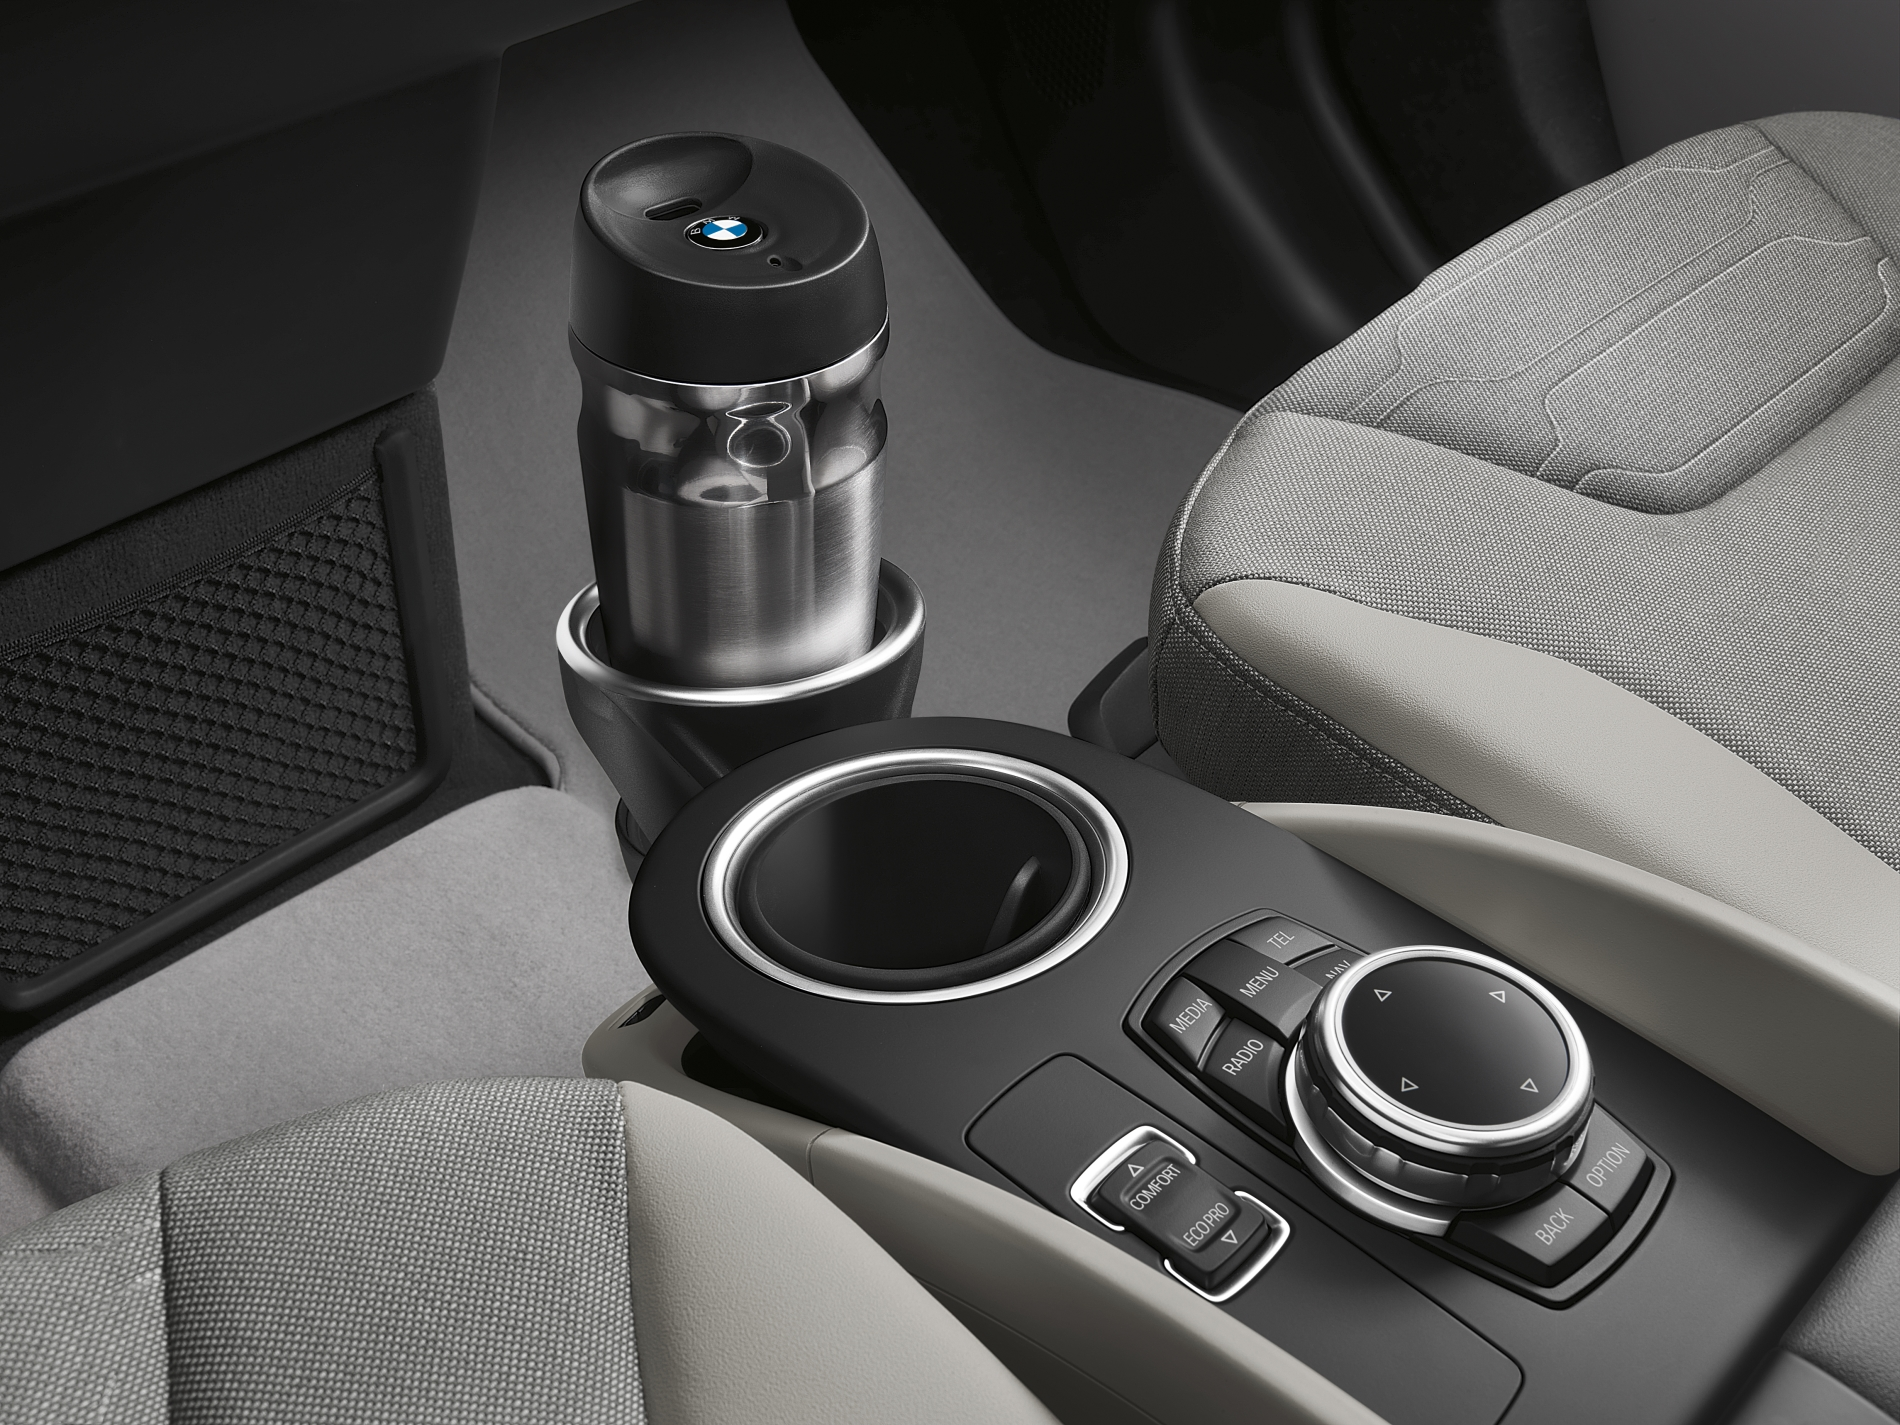 Bmw I3 Console Cup Holder My Electric Car Forums